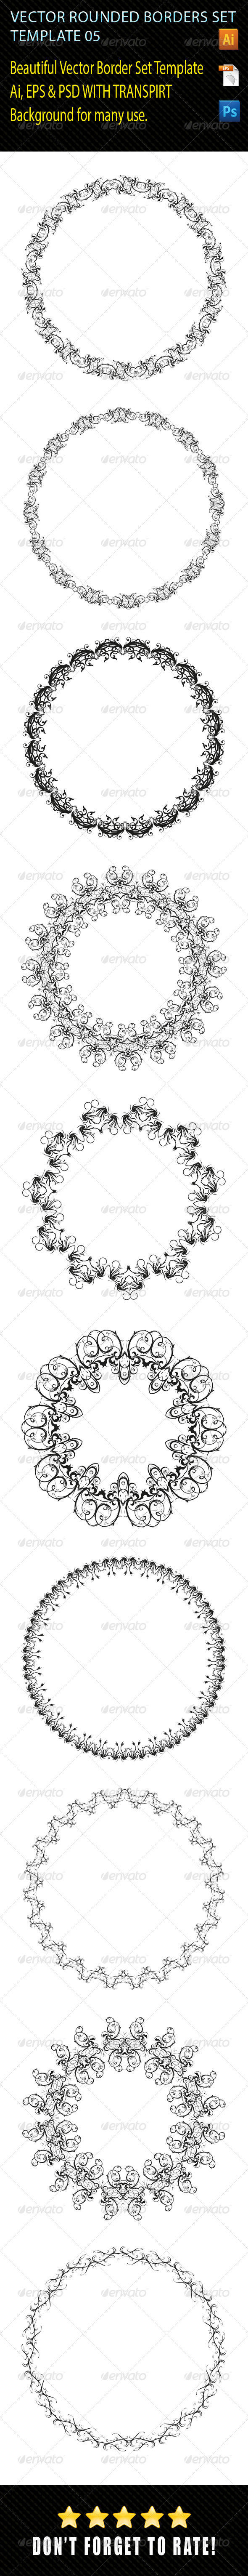 GraphicRiver Rounded Borders Set 05 8295065